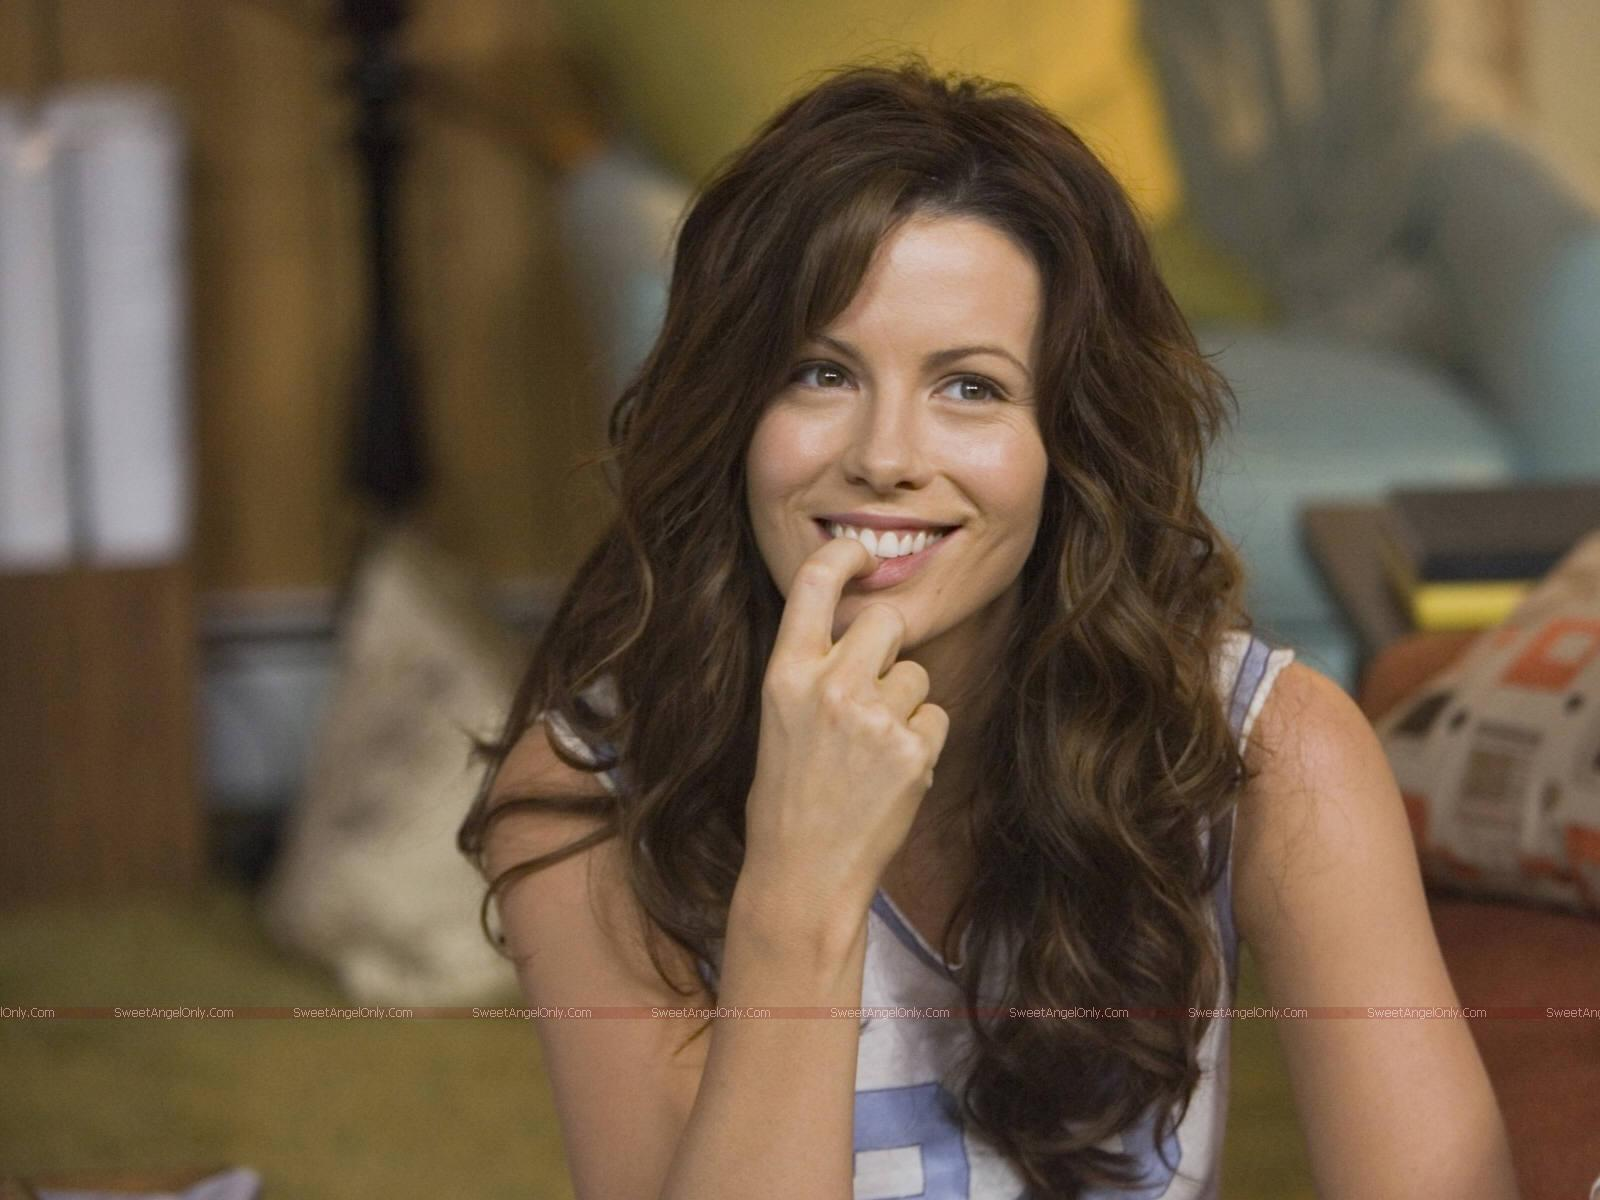 http://4.bp.blogspot.com/_chcAT8BuI-s/TTG32isuIPI/AAAAAAAAAtw/-KgwtF9CAy4/s1600/kate_beckinsale_beautiful_face_wallpaper_06.jpg